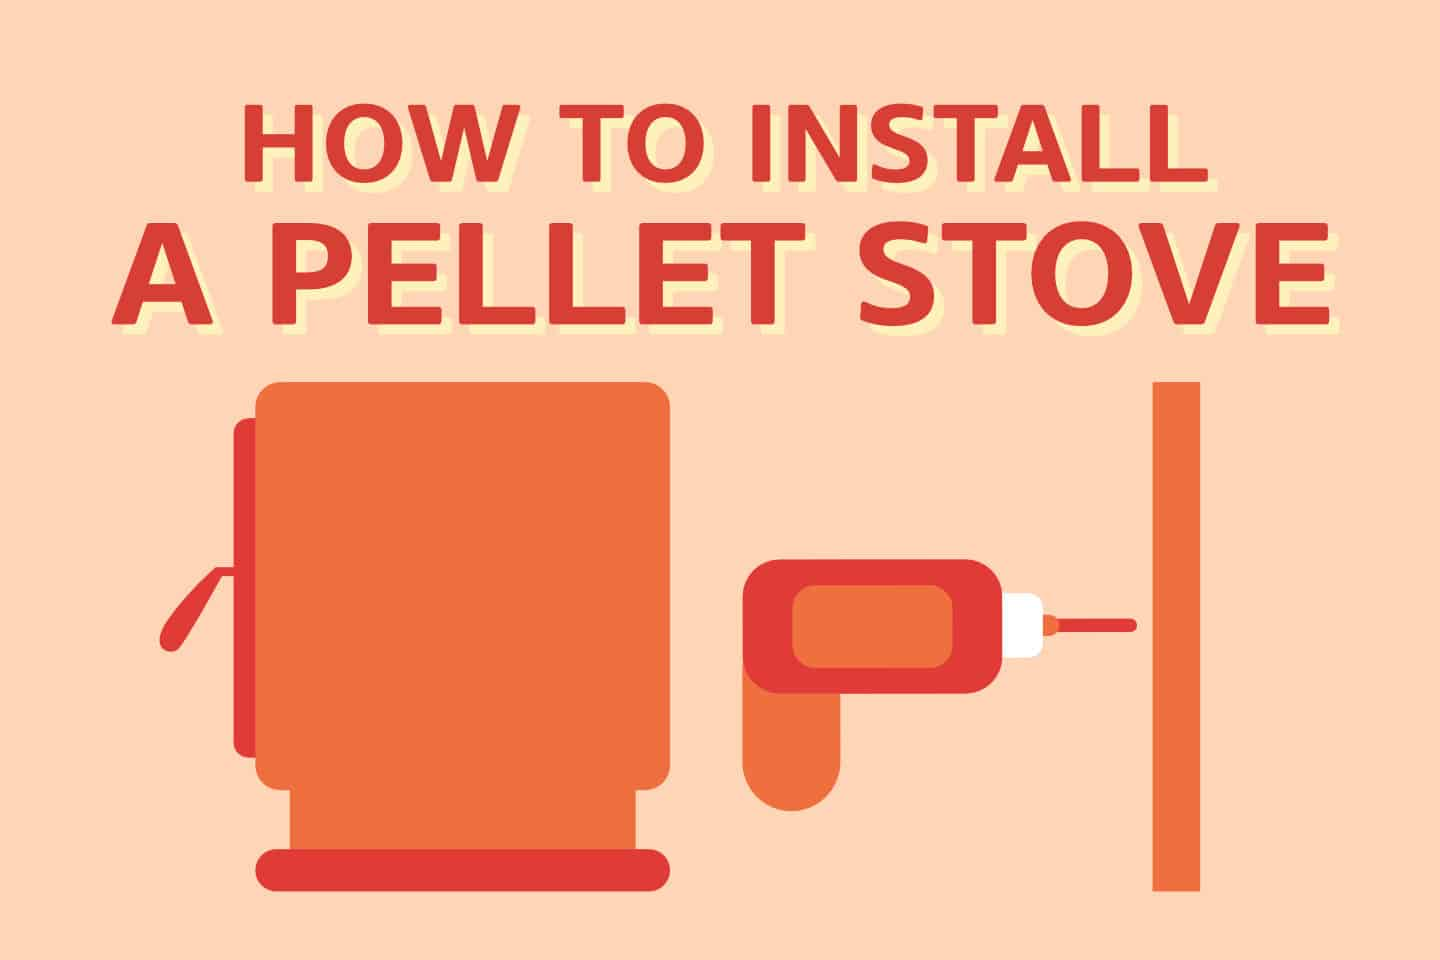 How To Install Pellet Stove in 7 Steps (The RIGHT Way)